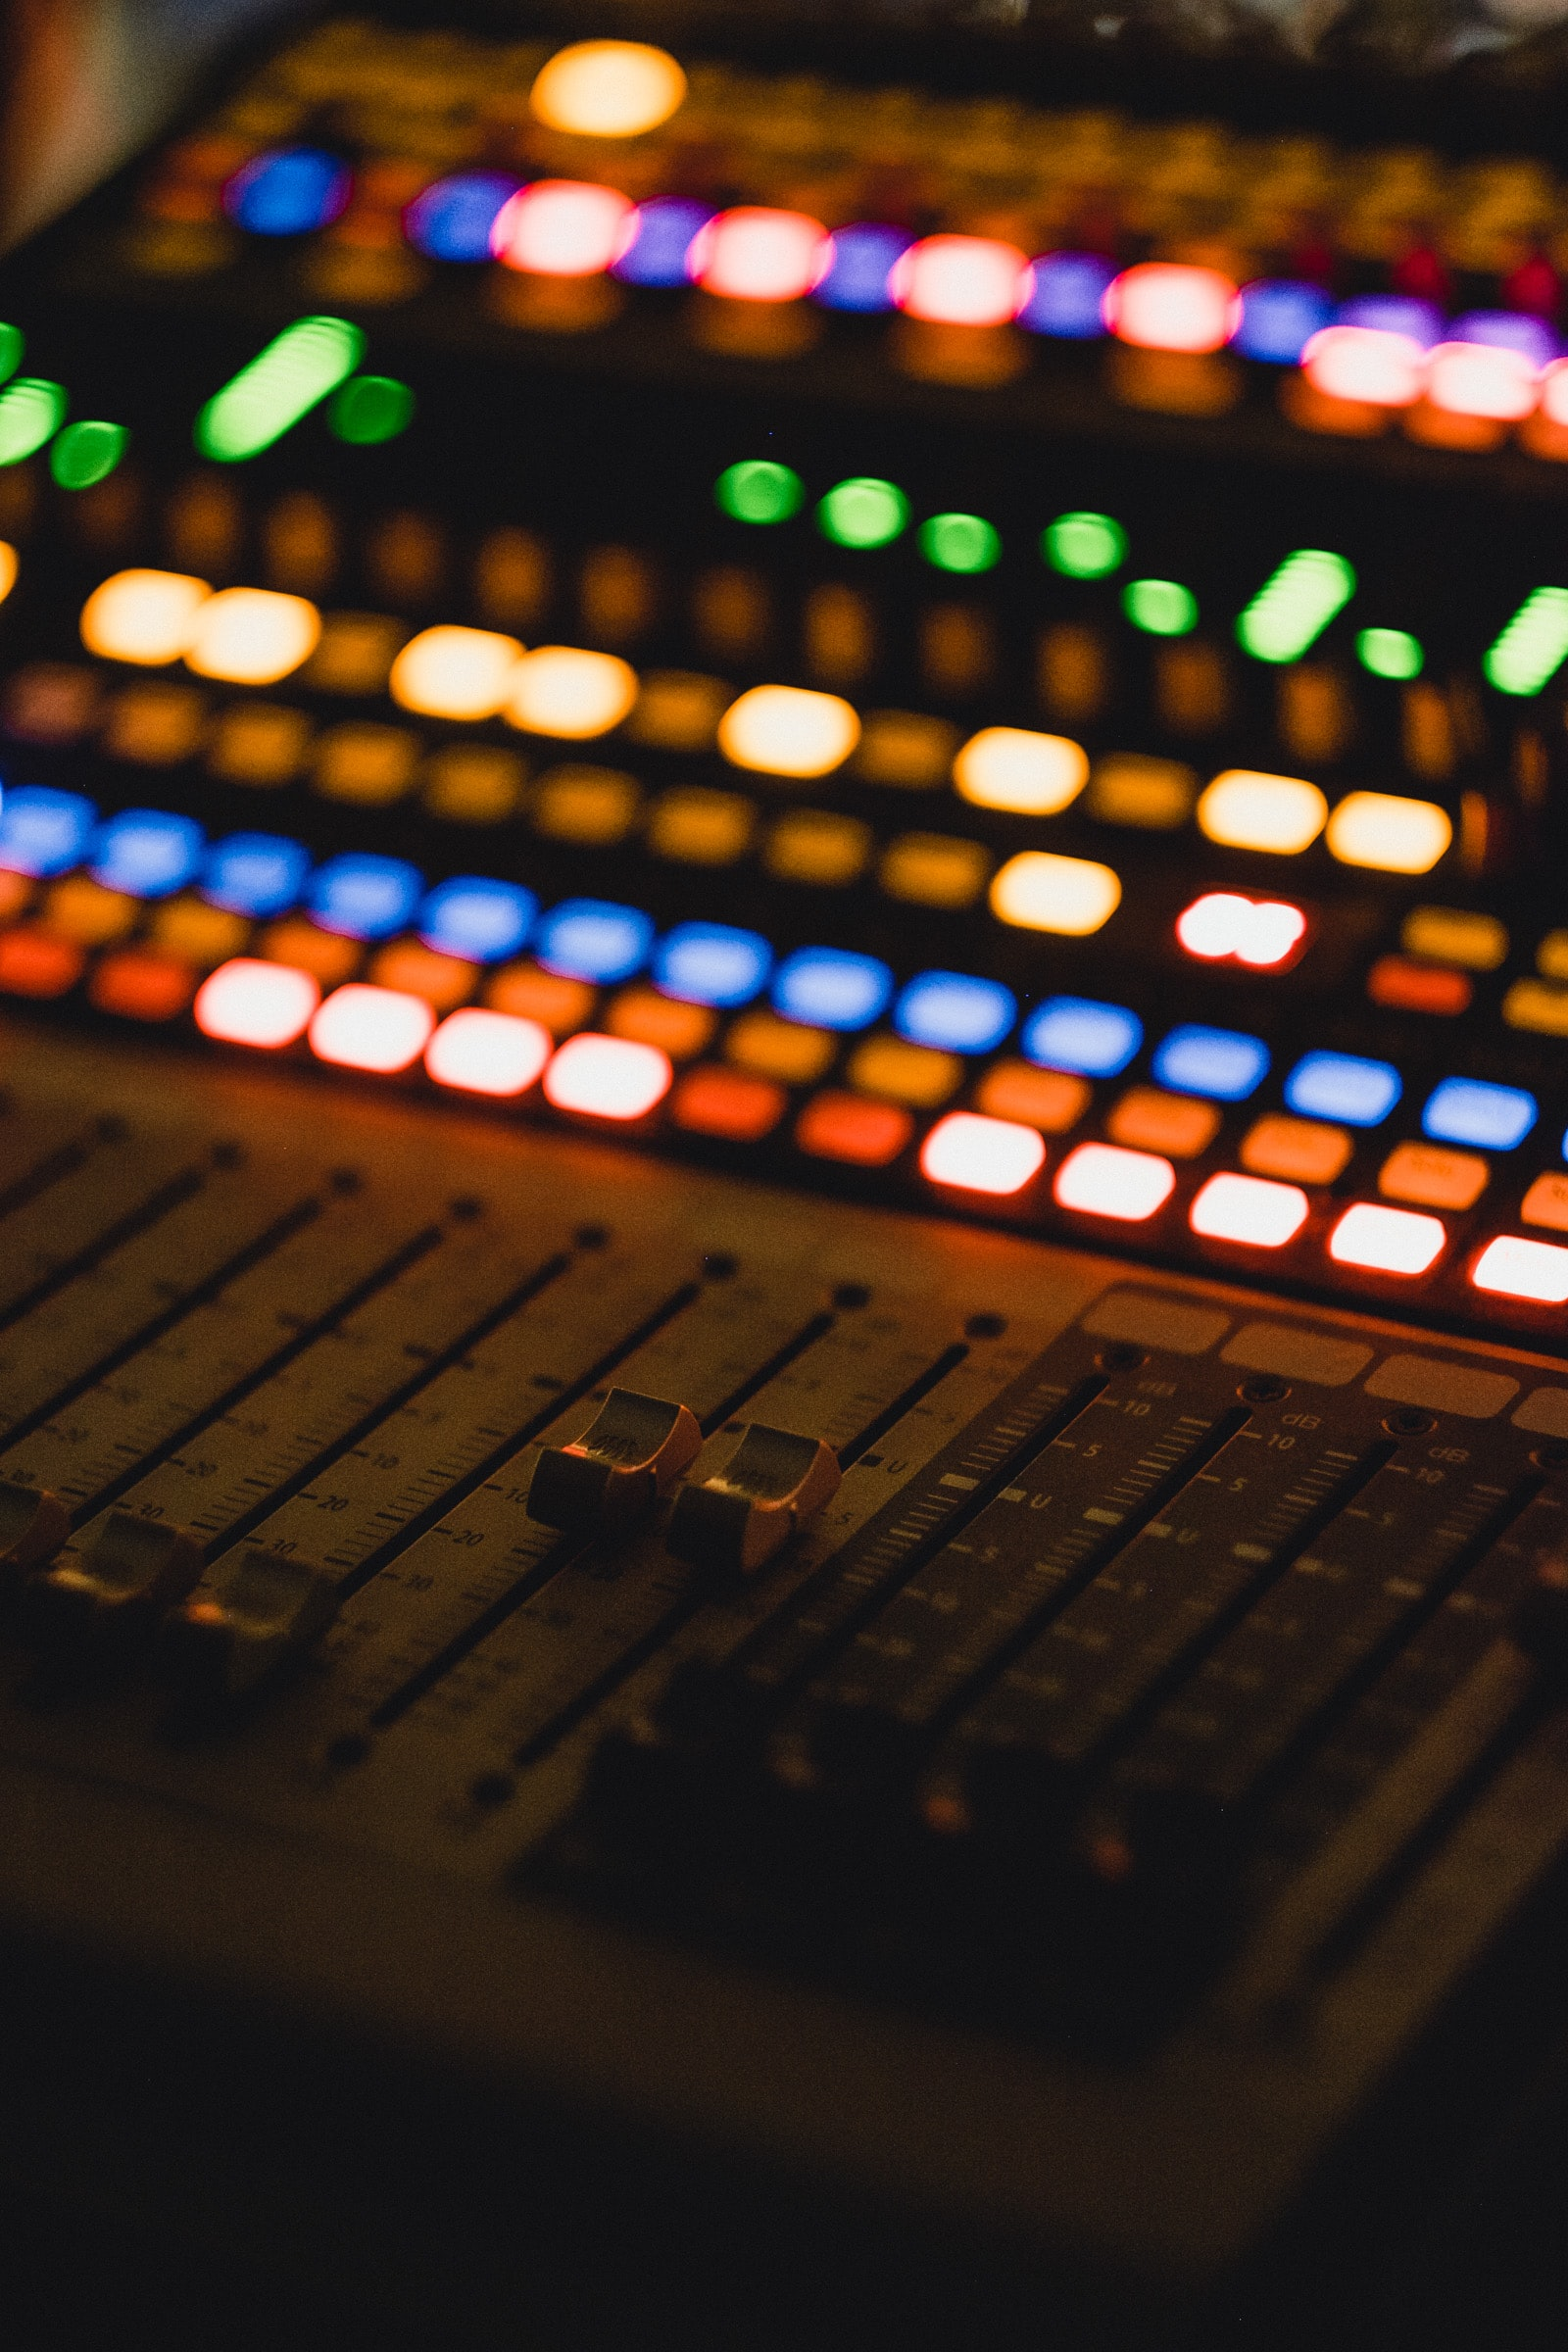 A close-up of a music mixer with colorful flashing lights and dials